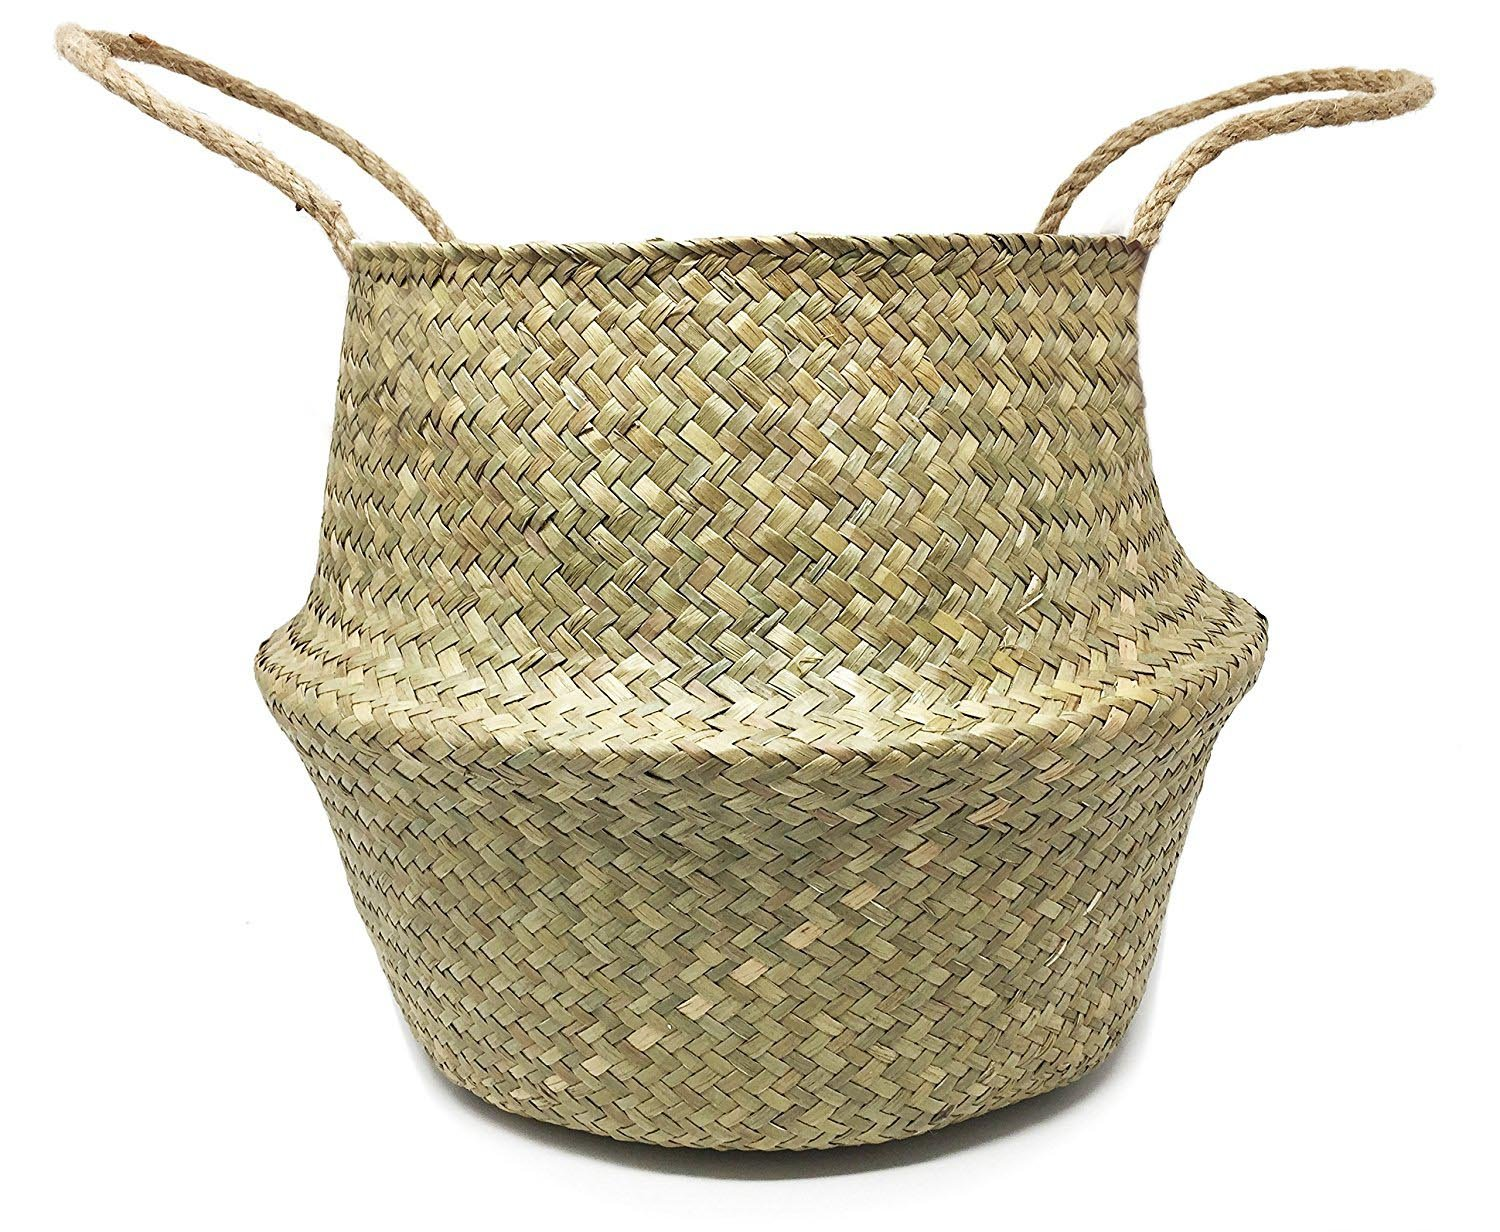 Natural Seagrass Belly Basket for Storage, Laundry, Plant Pot Holder Cover Planter, Medium - UNIQUE:Sea grass has natural color variations which makes every basket unique.Dimension: The top open diameter is 9.5 inch, the widest diameter is 12.6 inch, the height is 11 inch DELICATE WEAVING: The weaving is delicate and well made, and it will stand up straight and hold its shape.Each basket is woven by hand and is therefore unique again FLEXIBLE FIT: it's pliable constructed, so you can fit it into small awkward spaces.Storing your belongings in baskets makes it easier to be organized and find what you're looking for. - living-room-decor, living-room, baskets-storage - 81Ur%2Bo9JjtL -